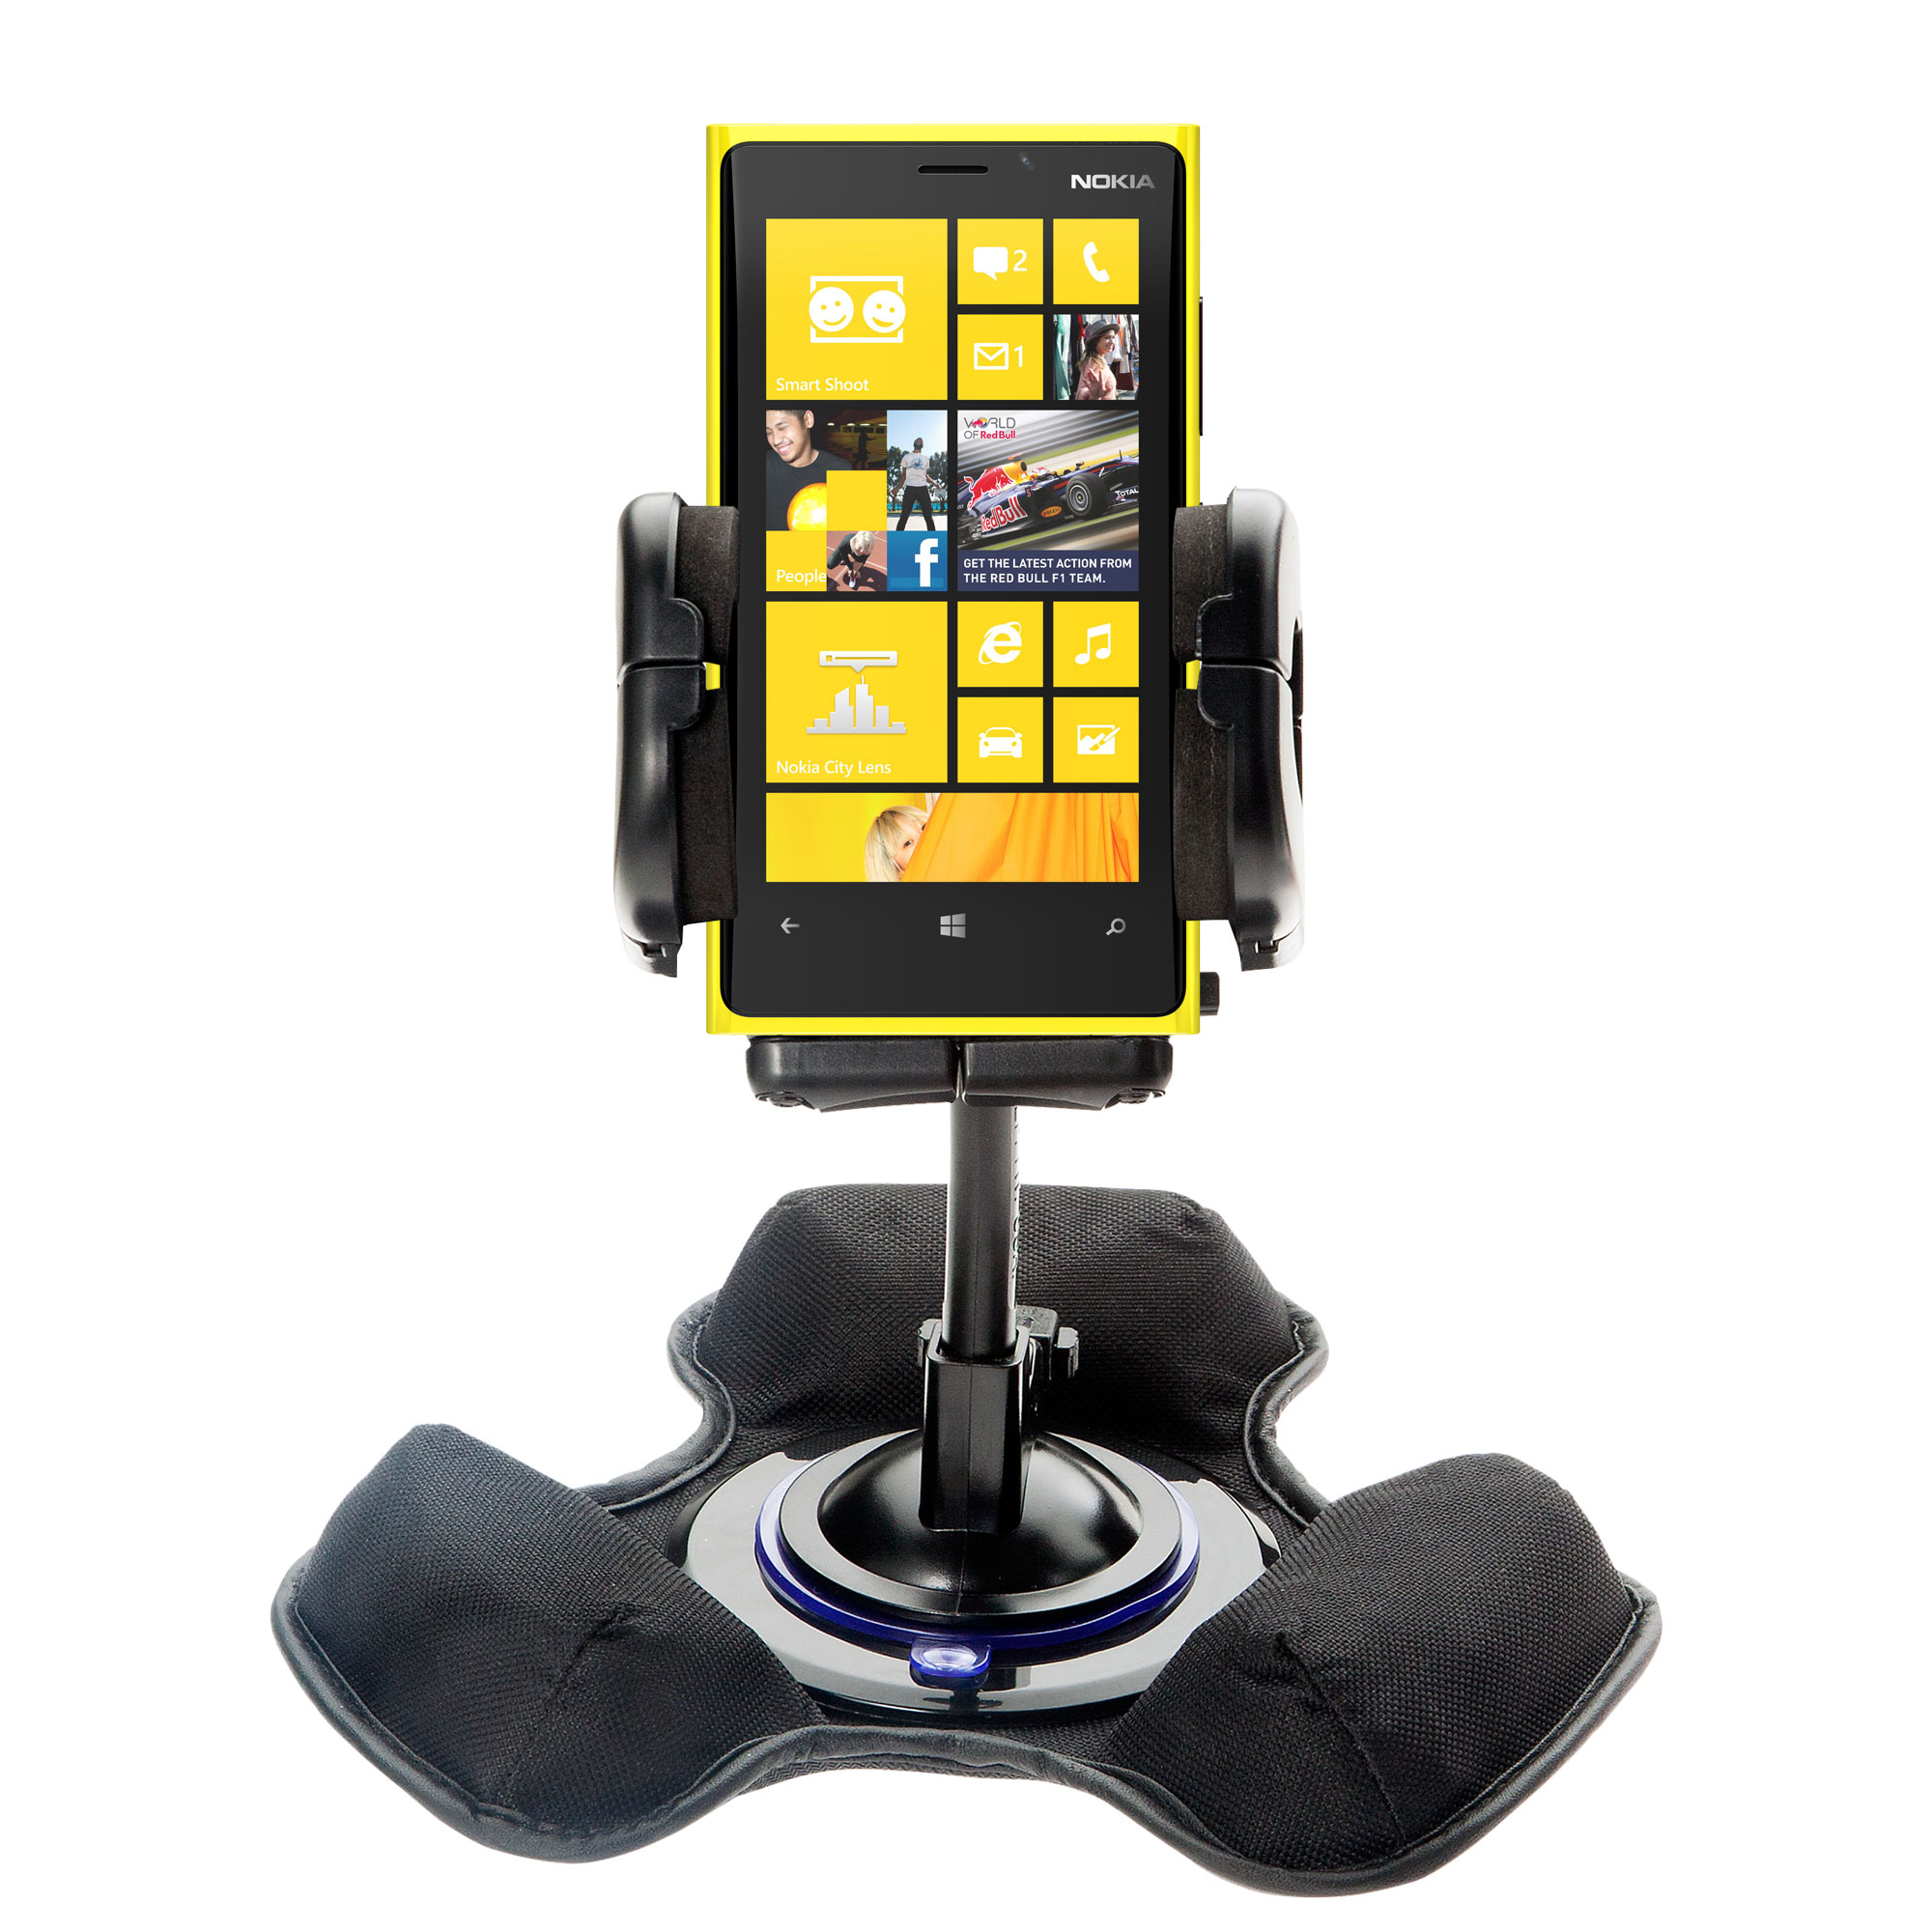 Car / Truck Vehicle Holder Mounting System for Nokia Lumia 920 Includes Unique Flexible Windshield Suction and Universal Dashboard Mount Options